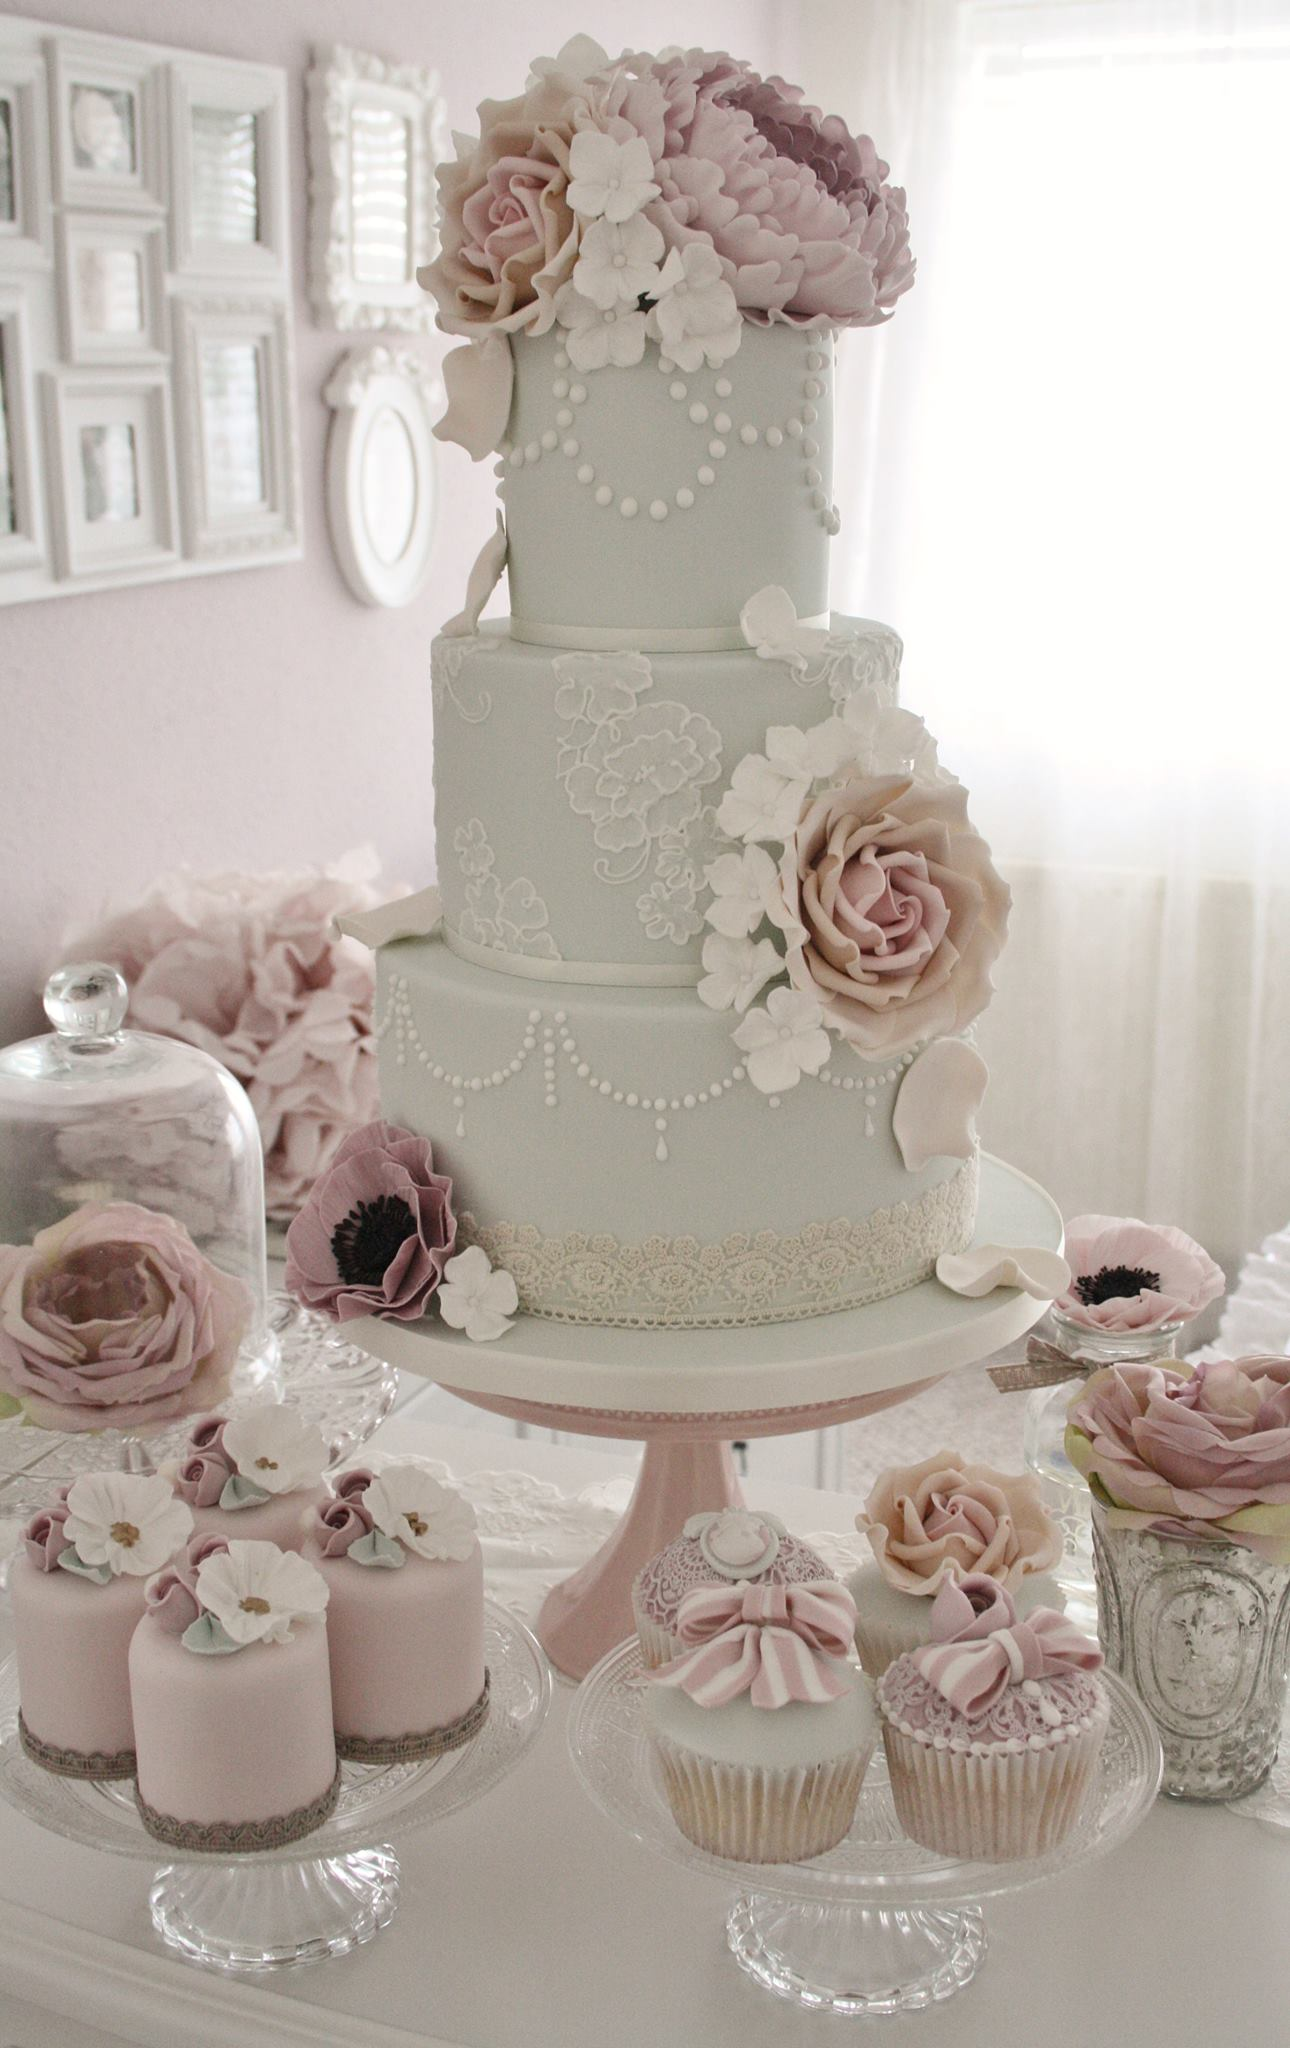 wedding-cake-ideas-20-06202014nz